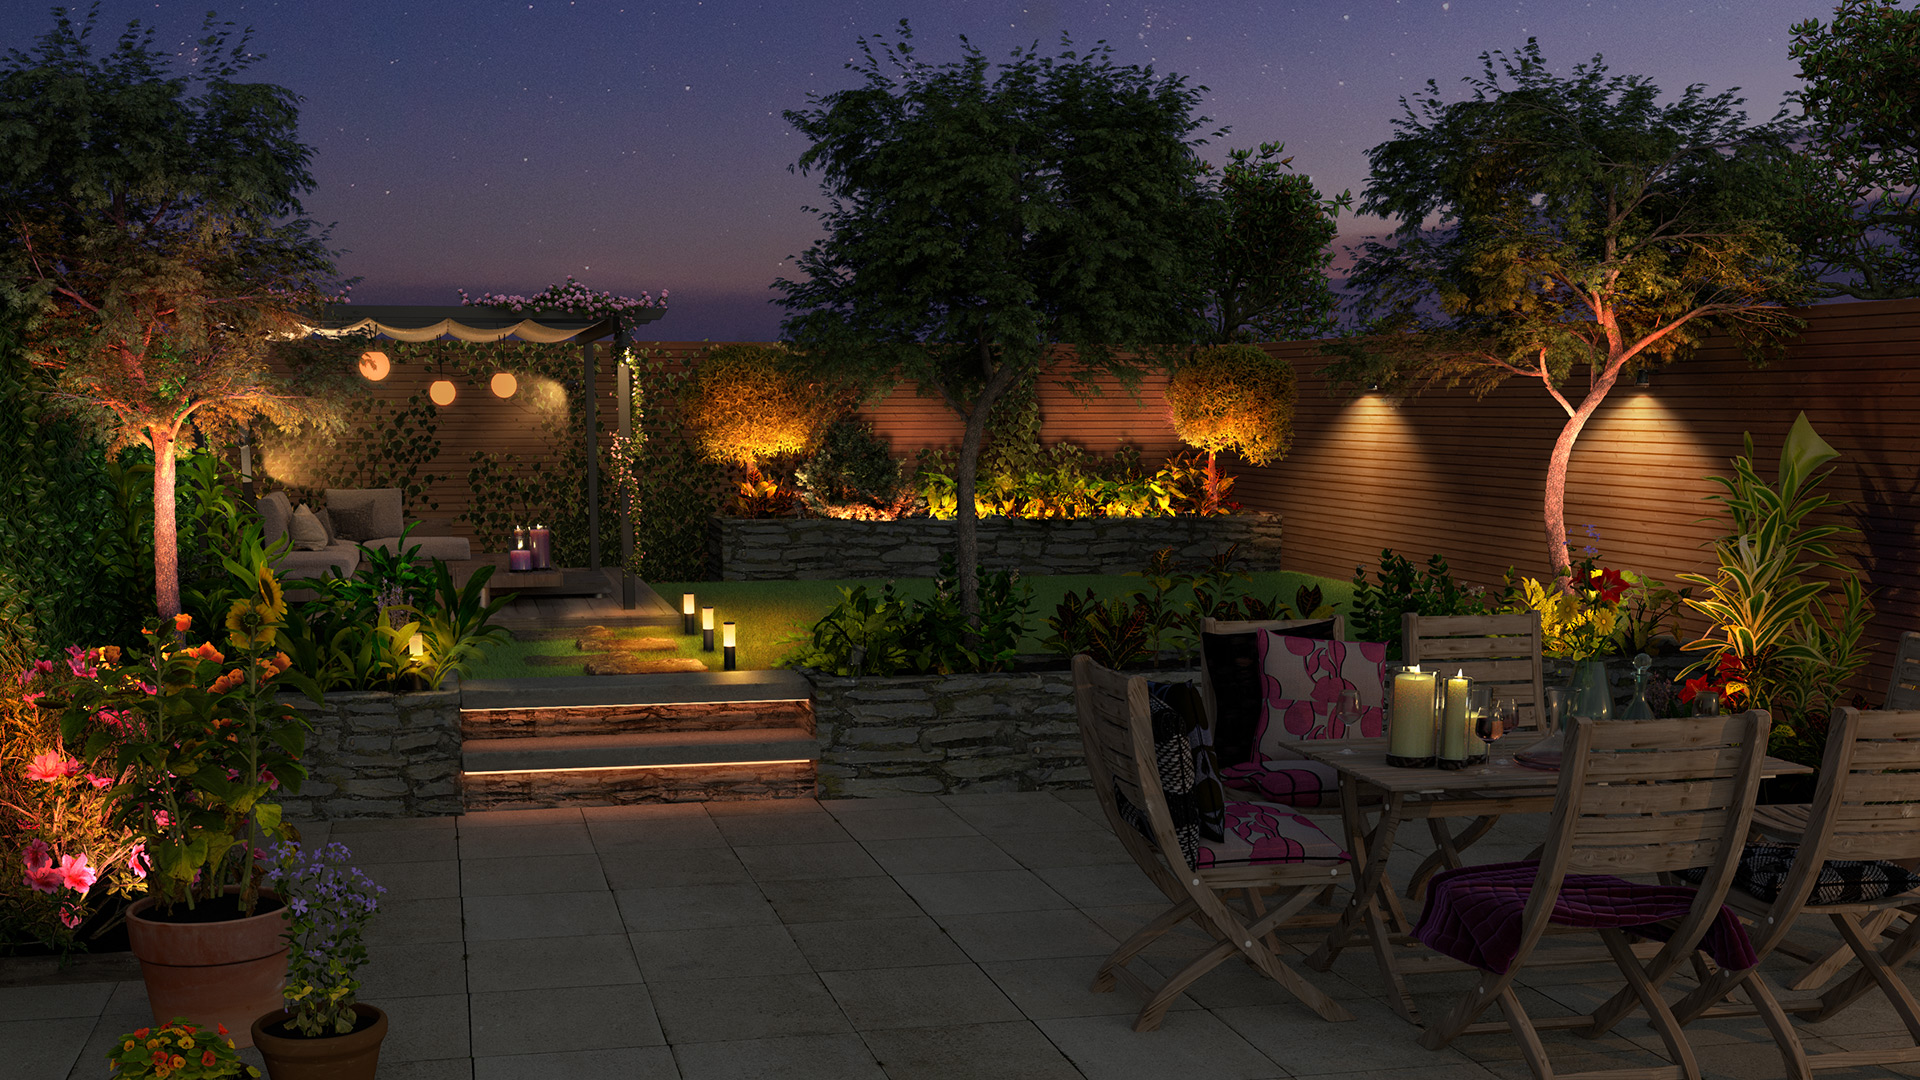 Outdoor smart lighting garden lounge setting